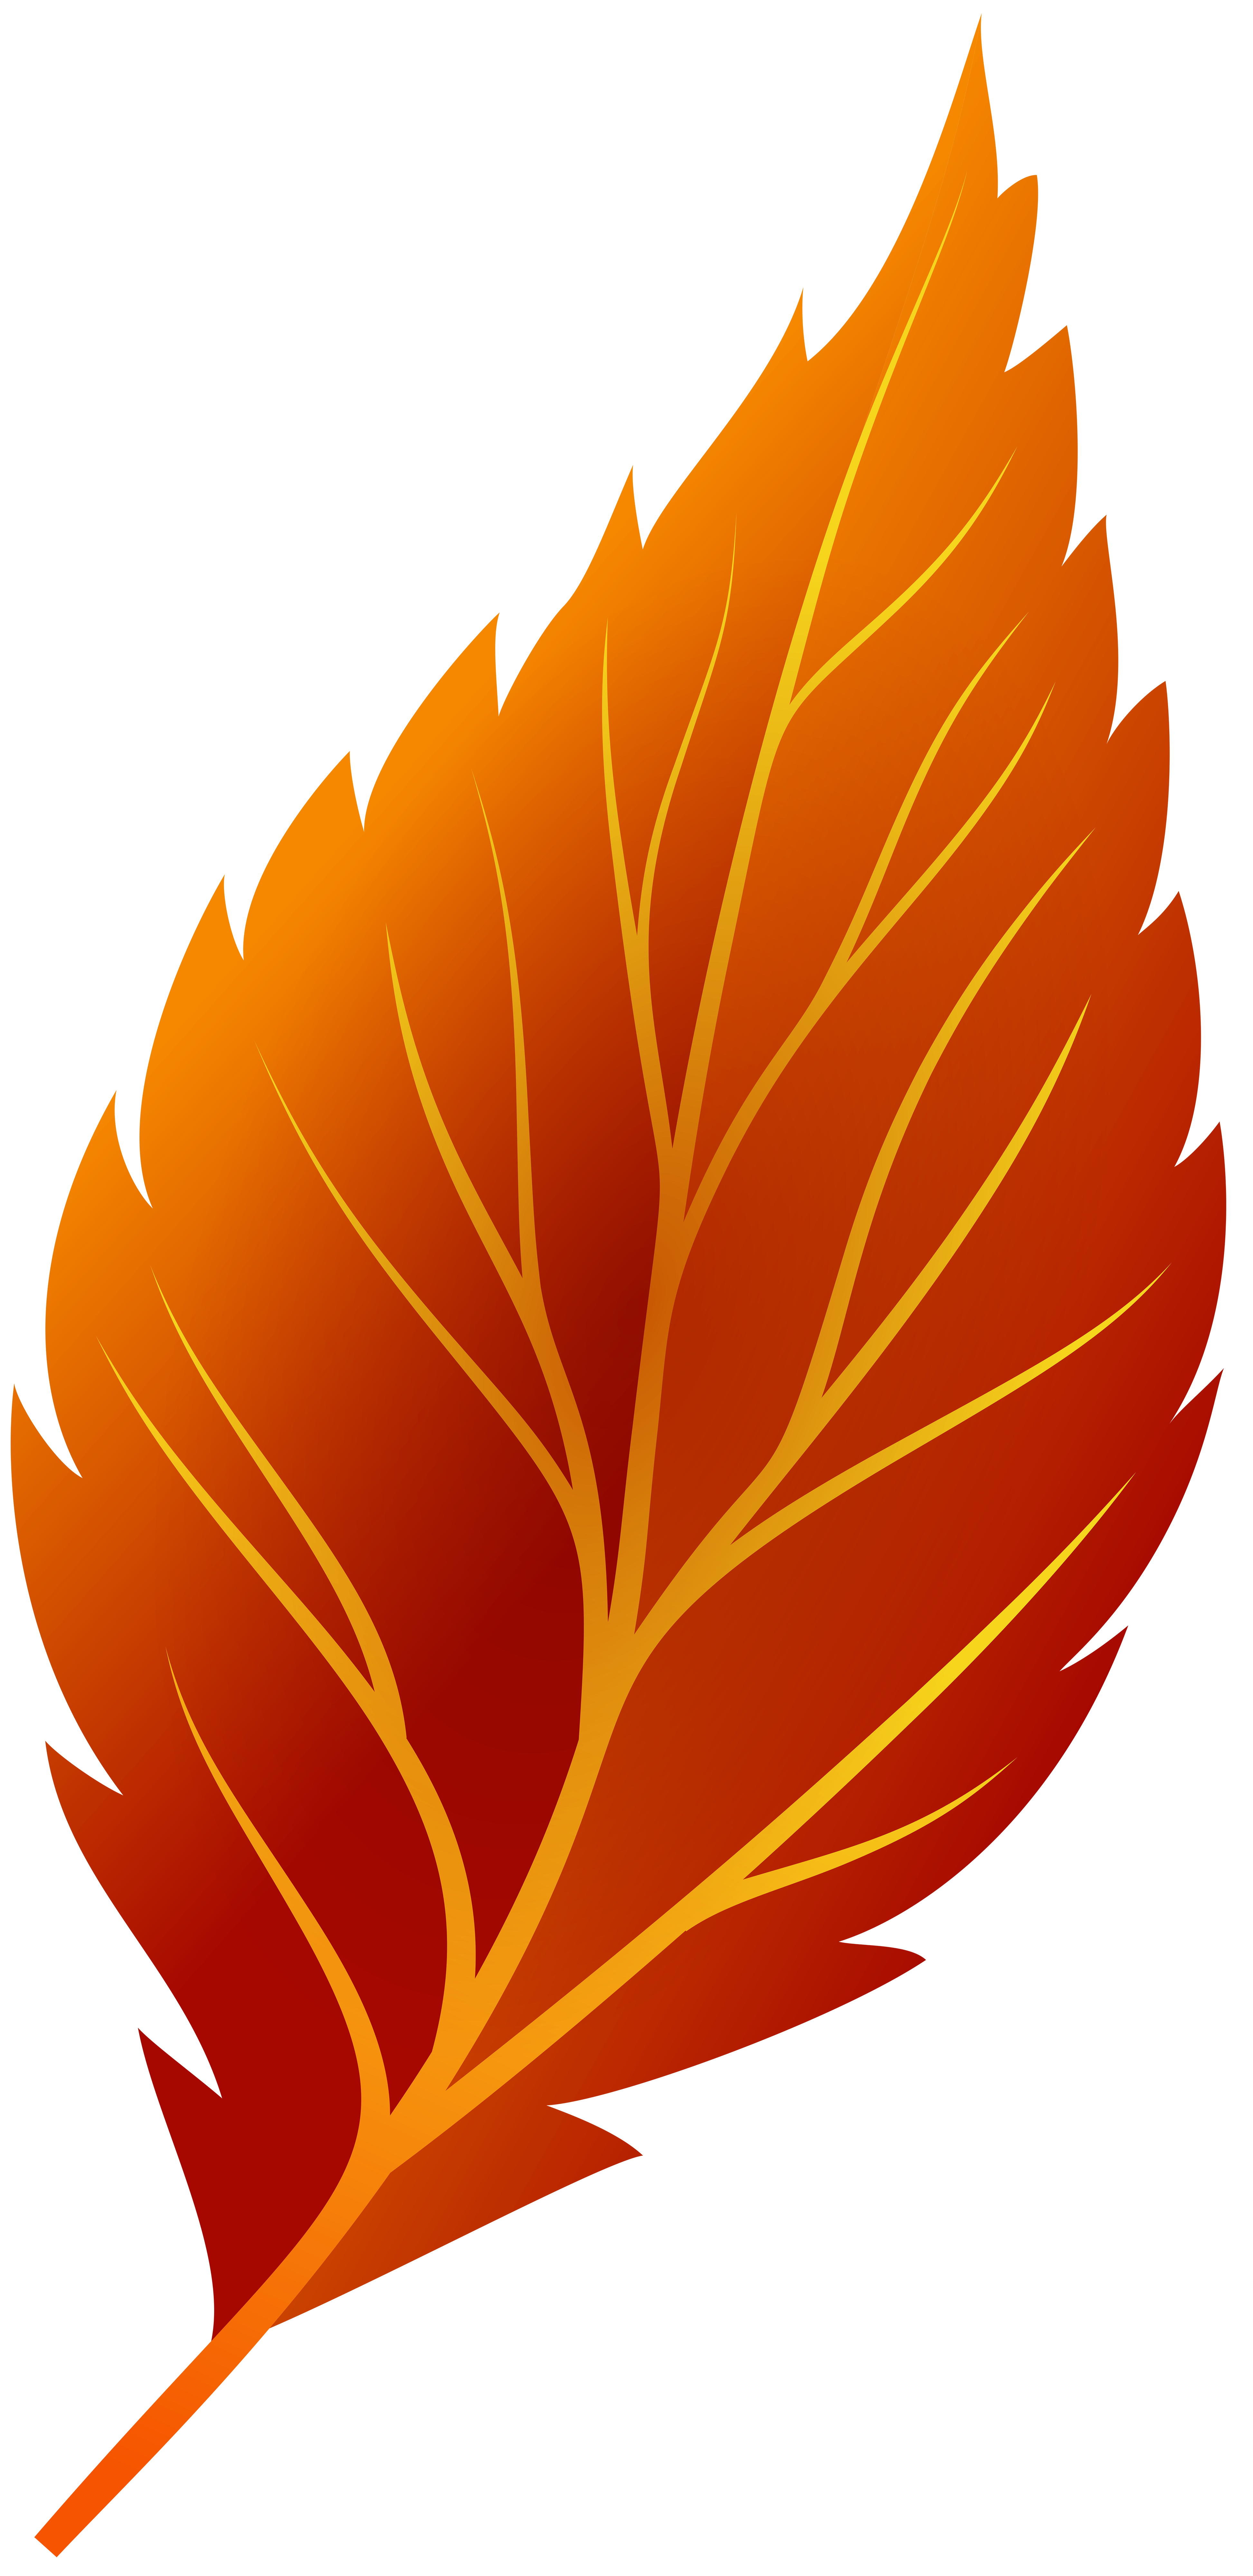 Brown tree without leaves clipart svg freeuse stock Free photo: Autumn Leaf - Tree, Plants, Leaf - Free Download - Jooinn svg freeuse stock